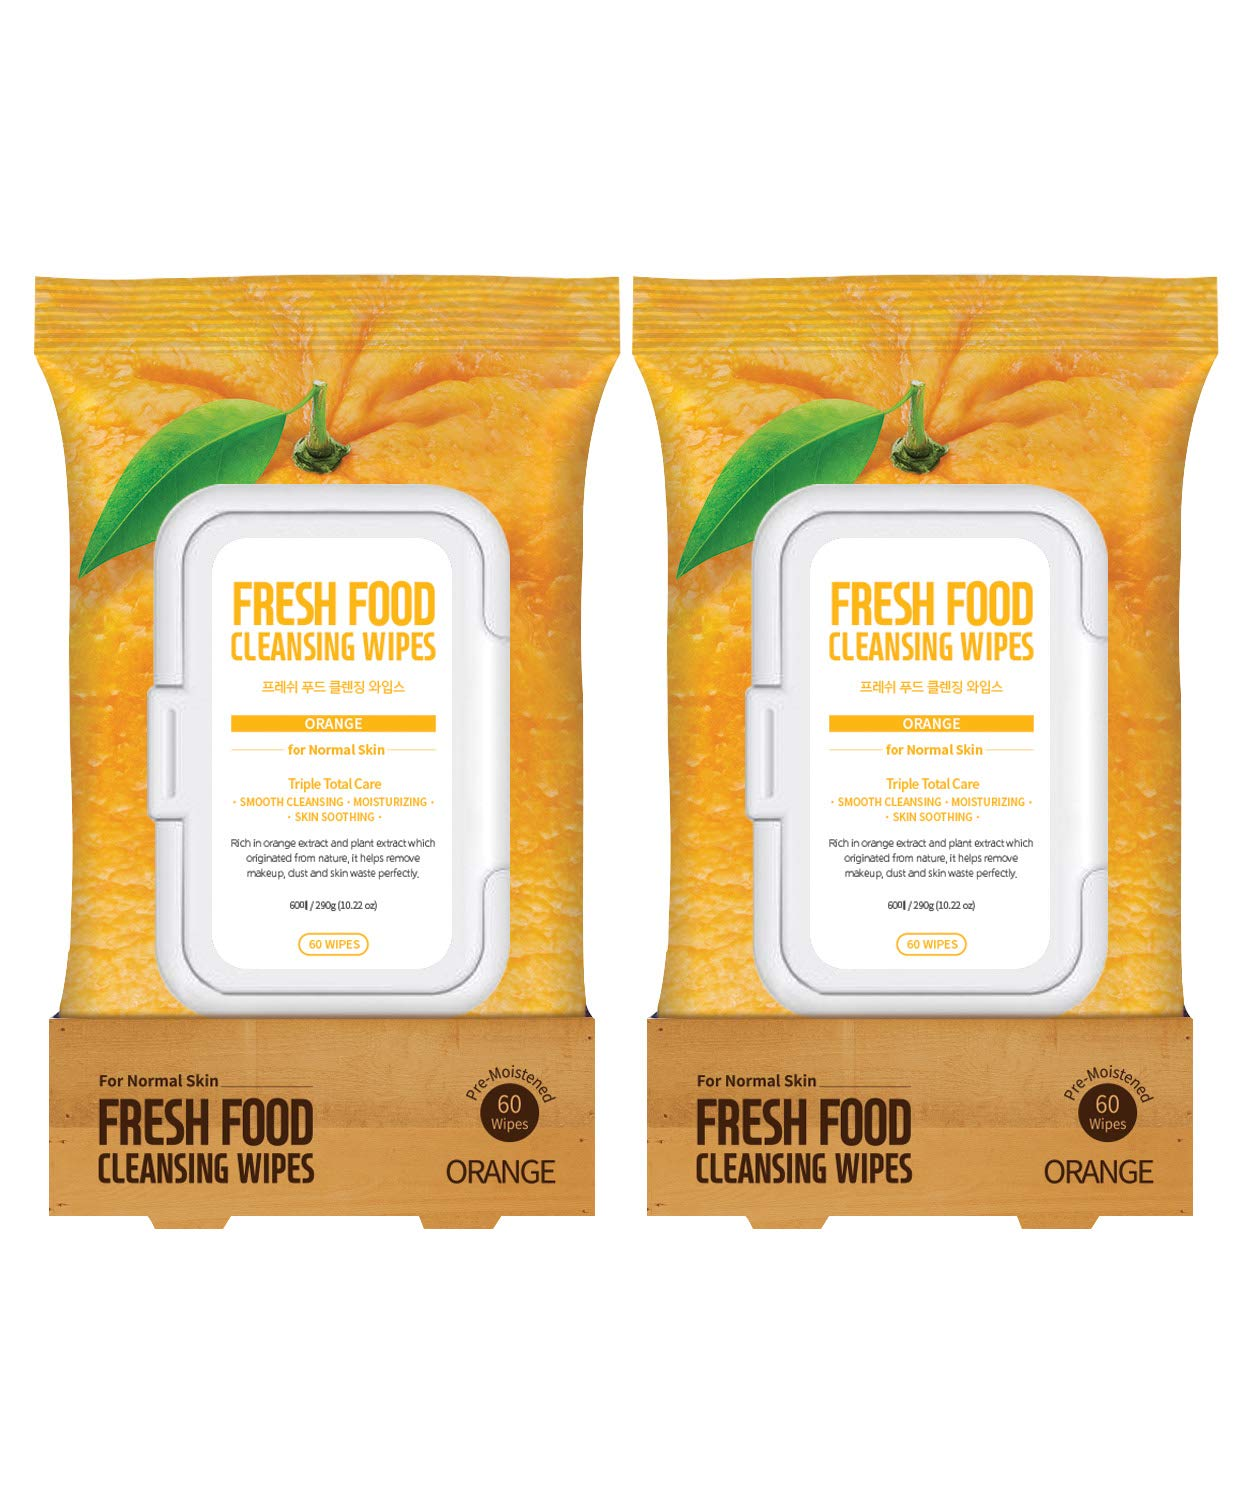 Face Wipes Makeup Remover Daily Simple Gentle Cleansing Cloth by Fresh Food for Skin (Orange, 2pk Normal (120 Count))